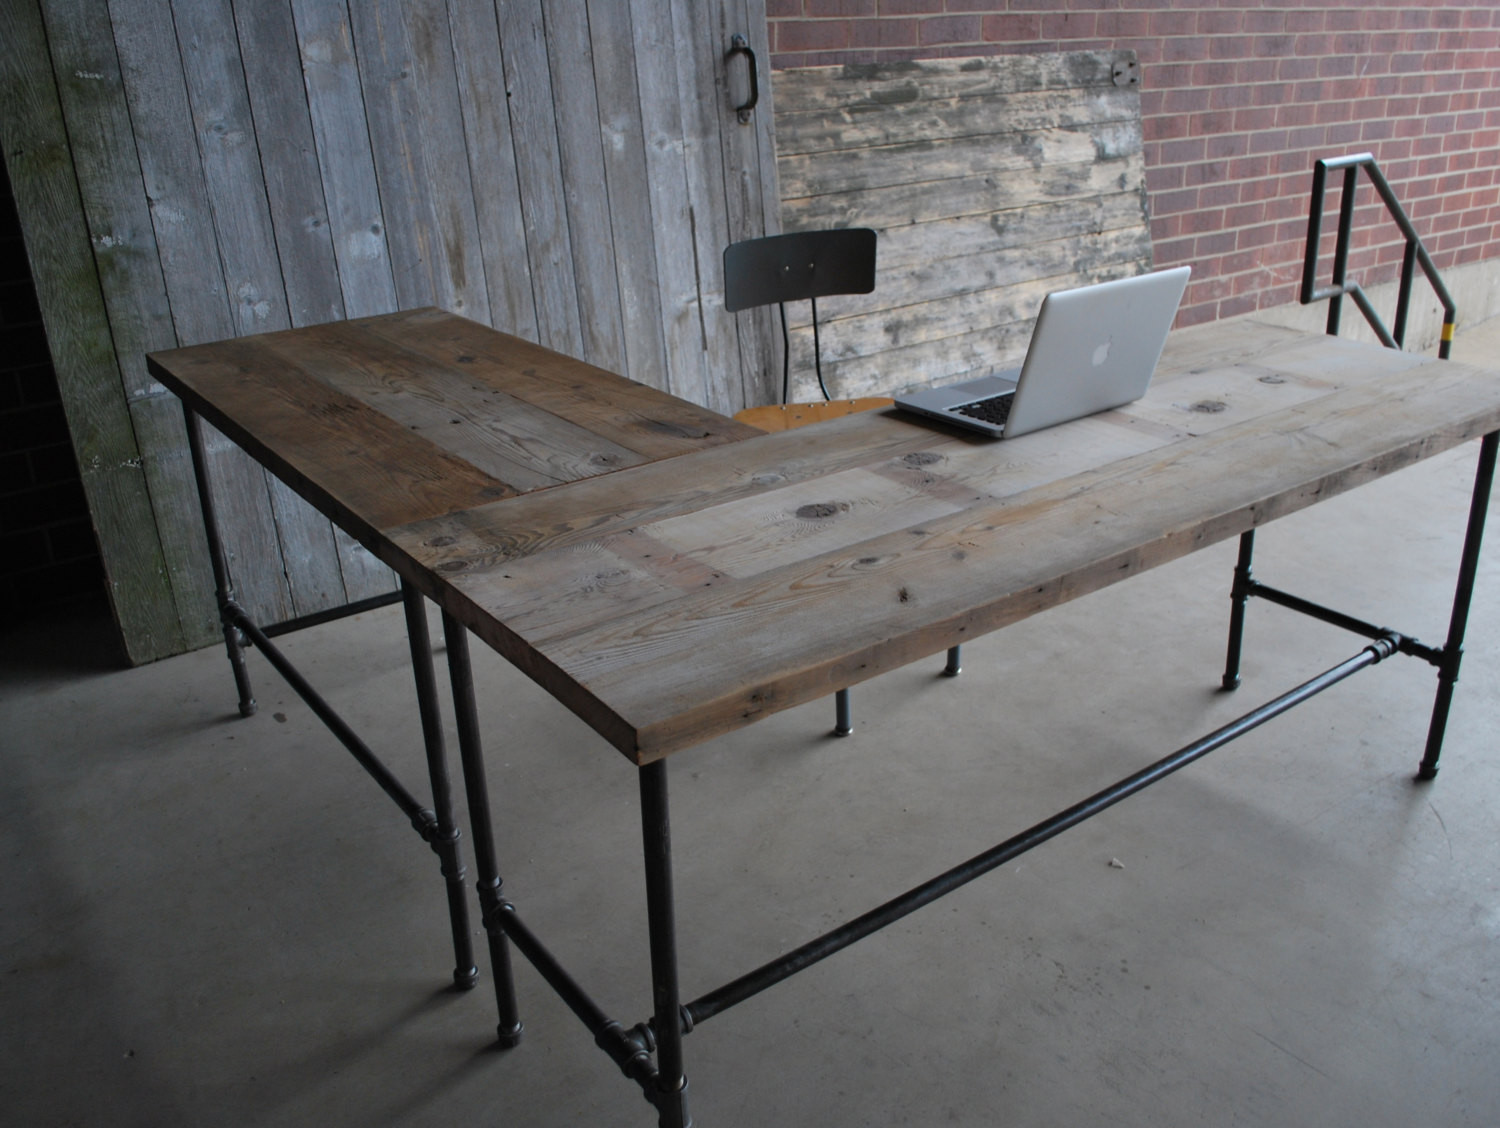 Best ideas about Reclaimed Wood Desk DIY . Save or Pin L shape modern rustic desk made of reclaimed wood Choose your Now.